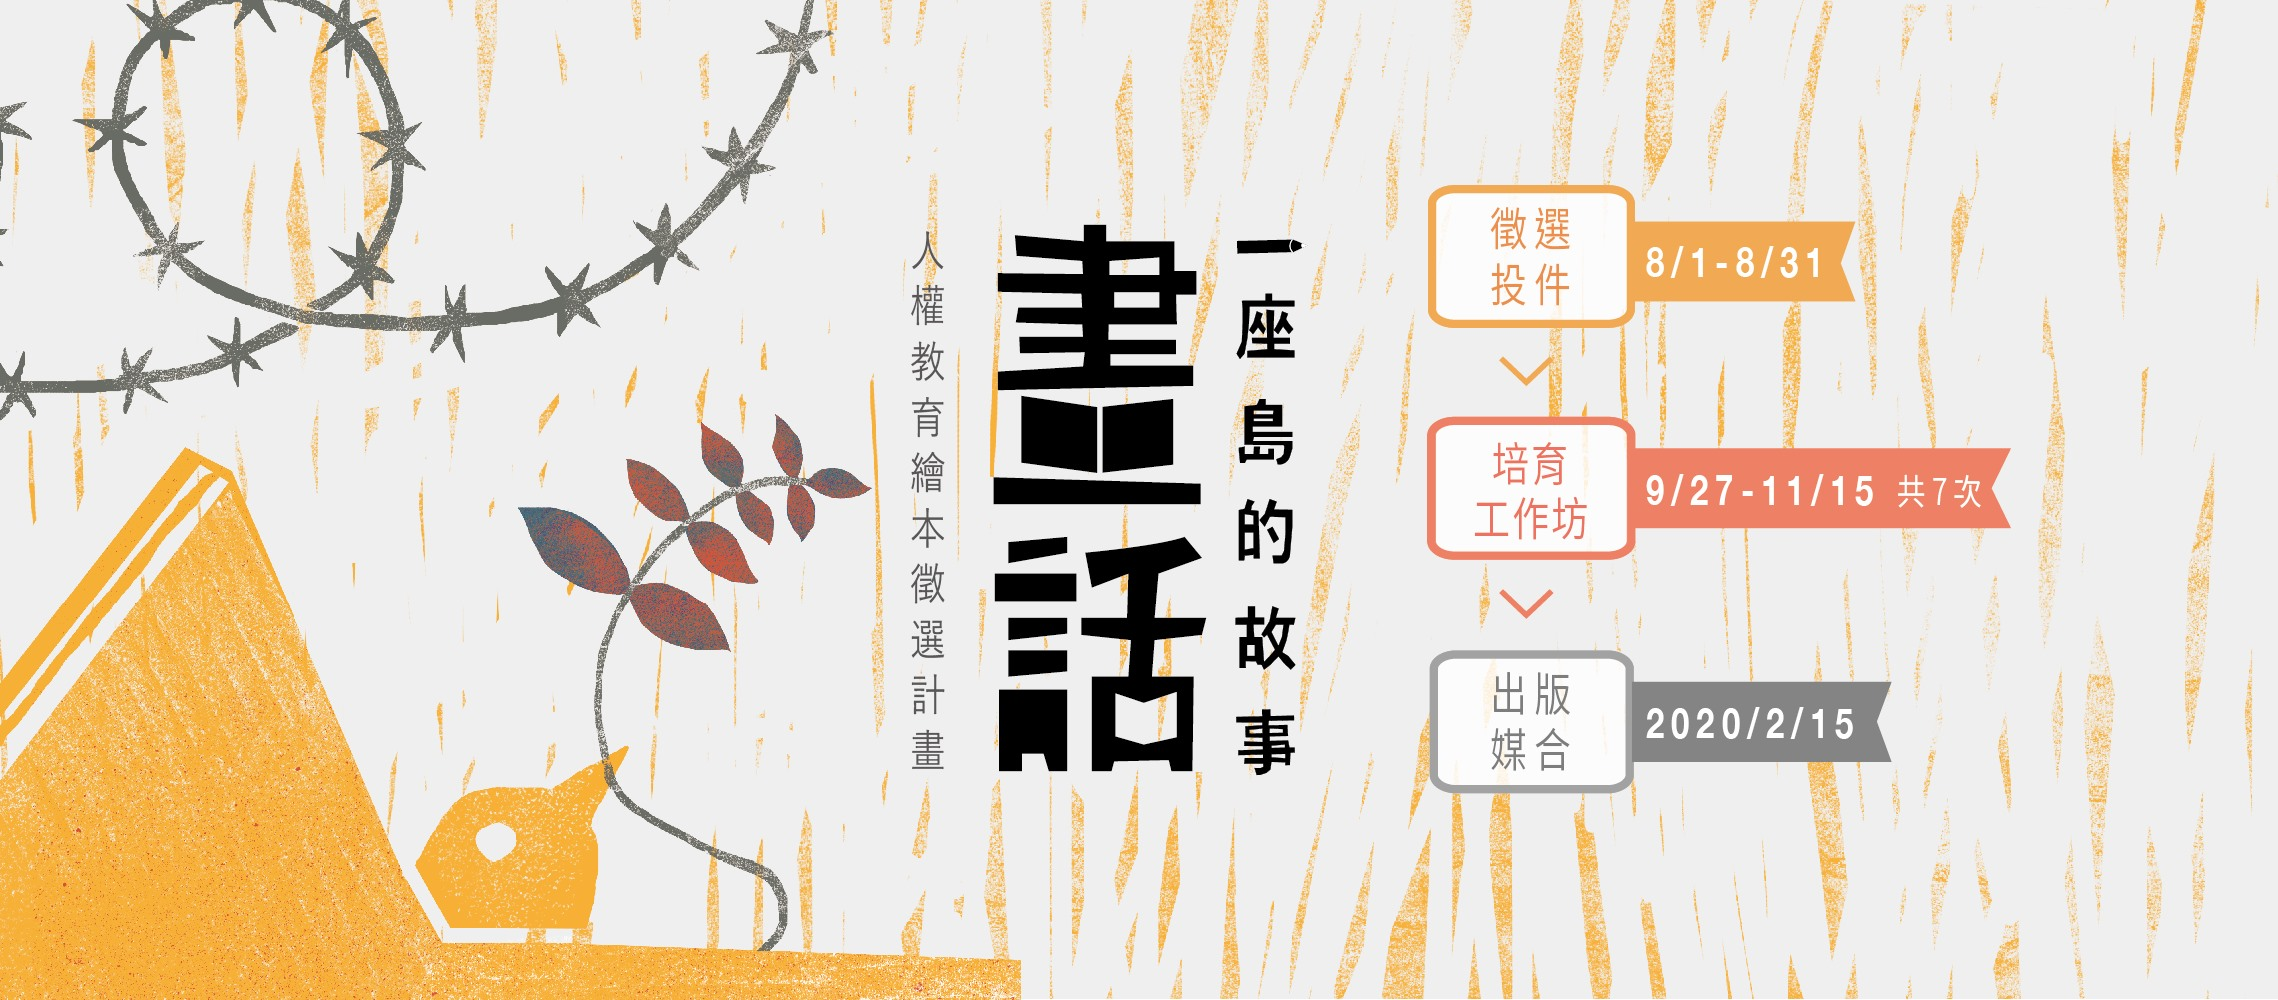 Picture books revisit dark chapters in Taiwan's human rights history